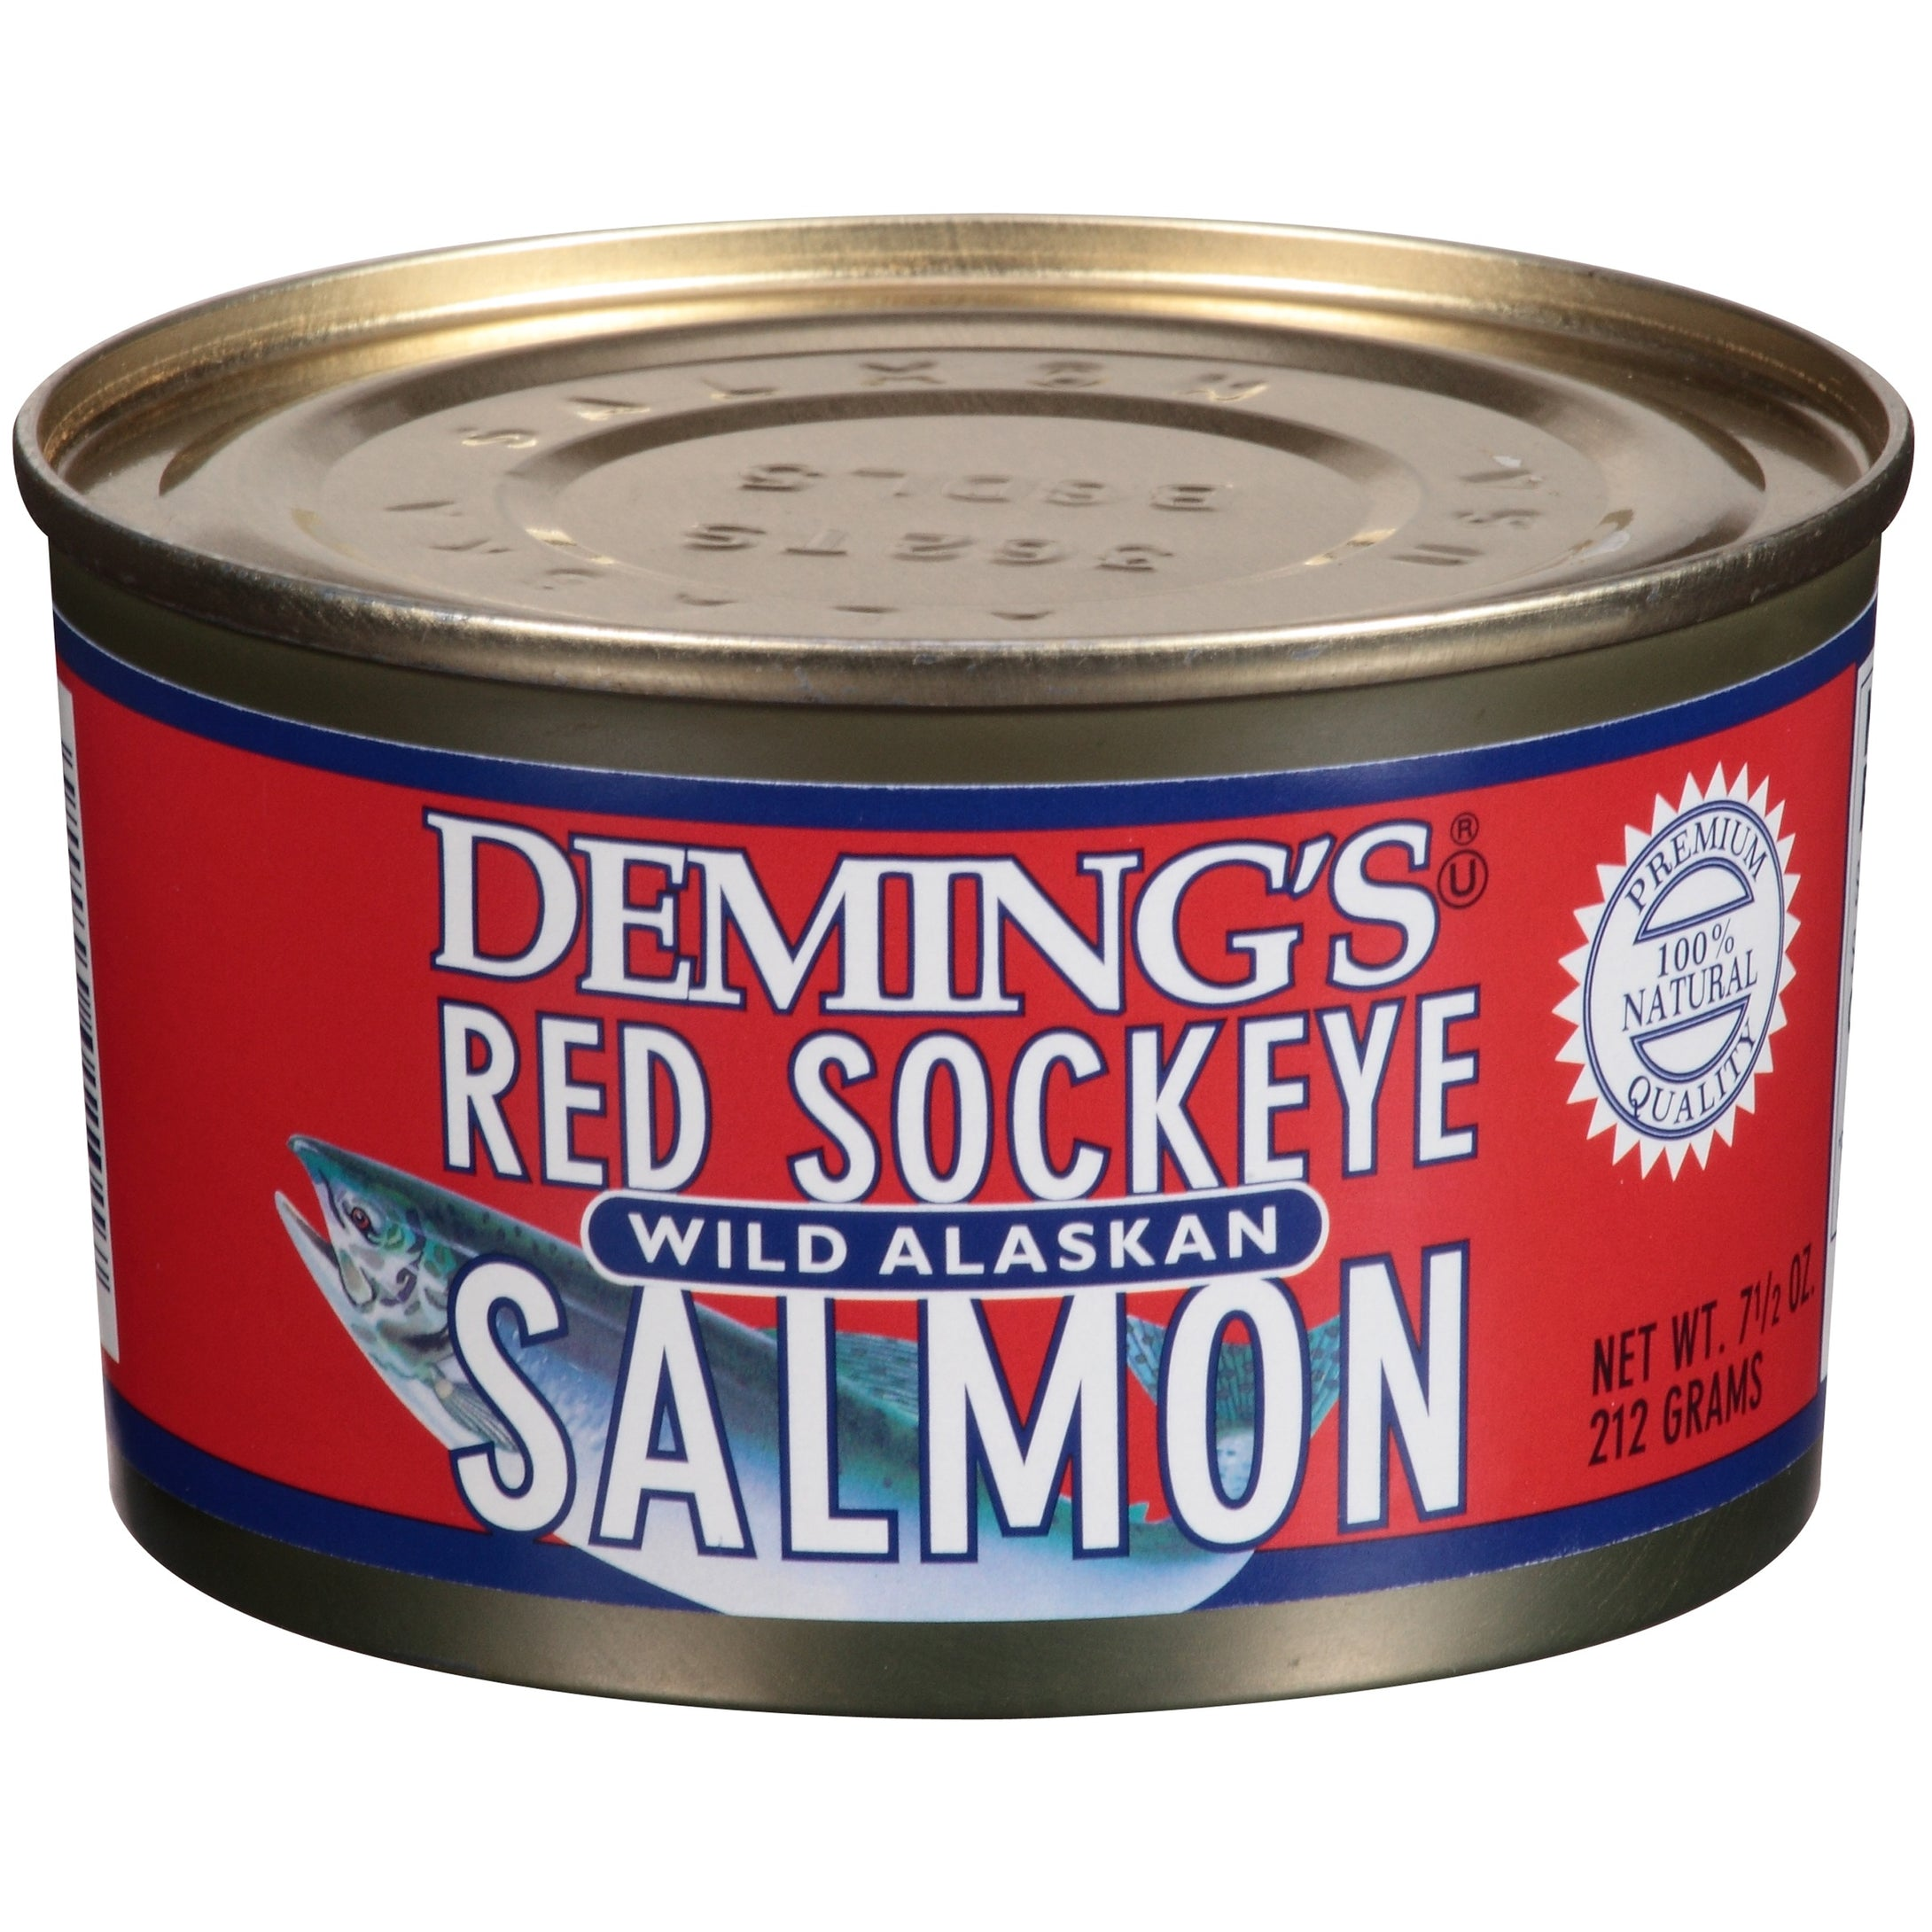 Deming's Wild Alaskan Red Sockeye Salmon, 7.5 oz Can